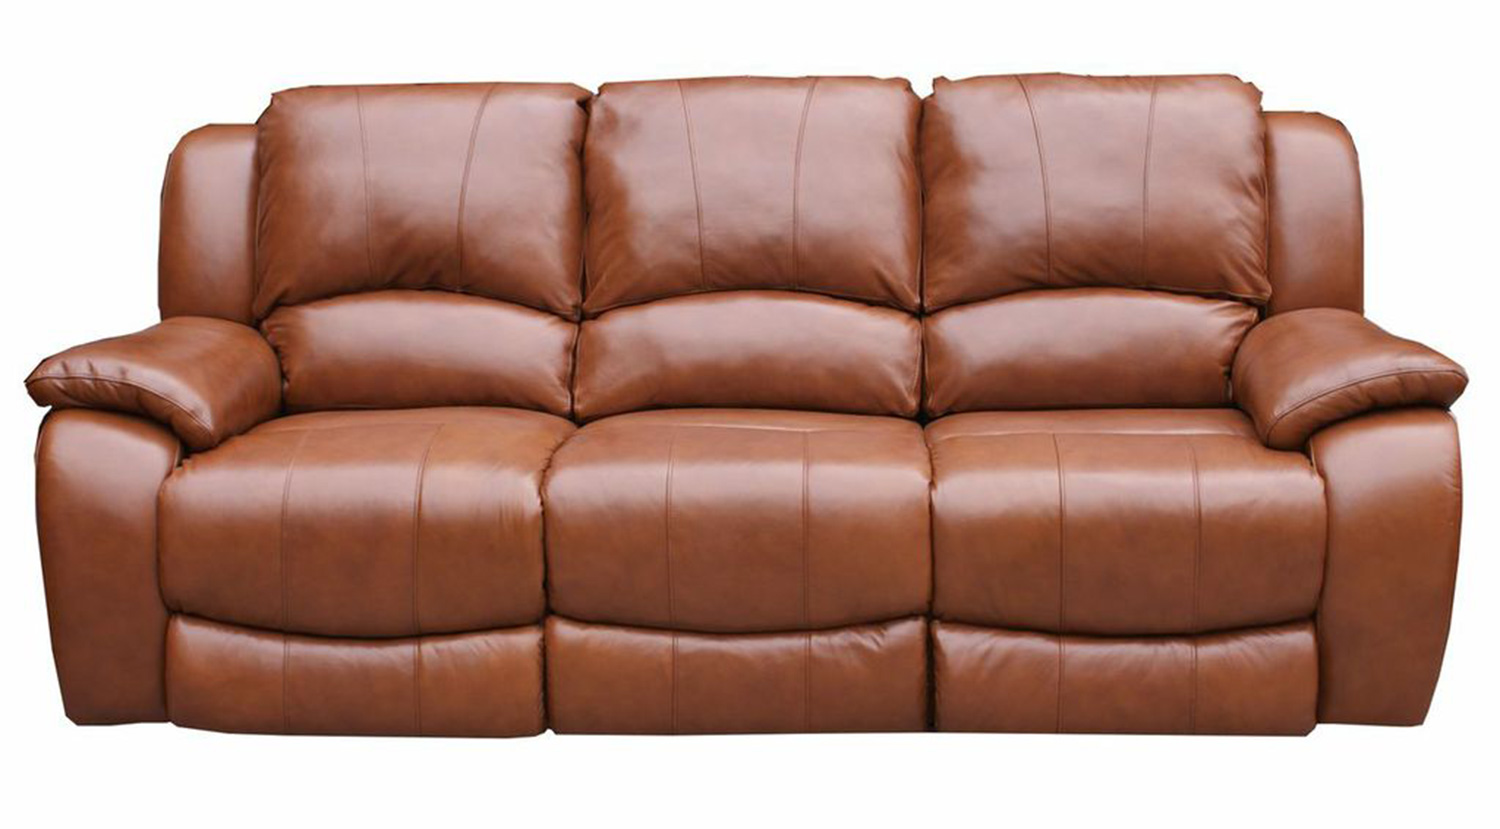 Select Barcalounger Palm Beach Carmel Triumph ll Casual Comforts Reclining Sofa Product Photo